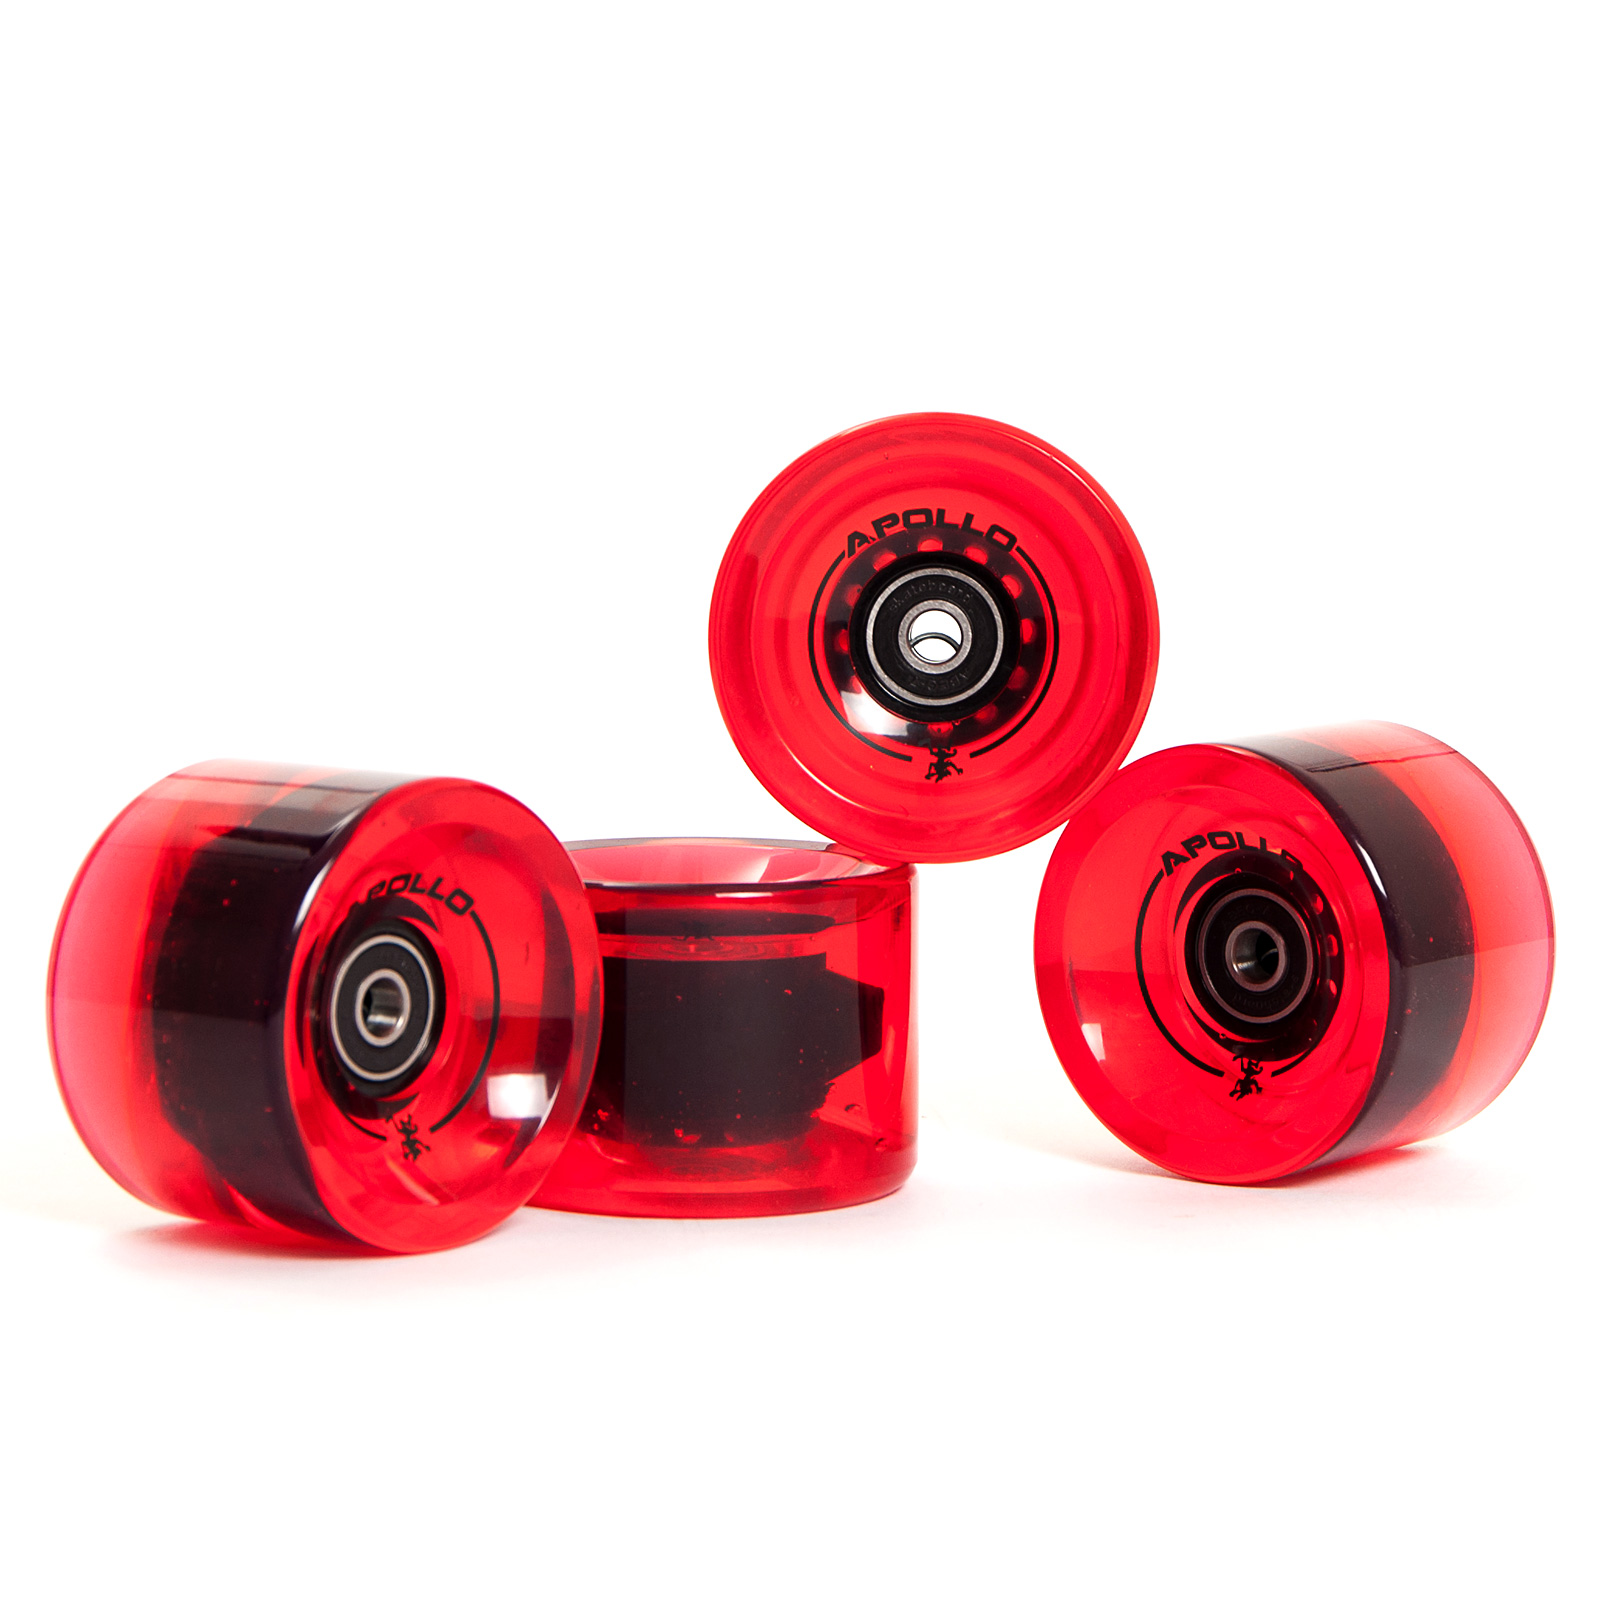 Apollo Longboard Rollen Wheel Set - BottleRed/rot(klar) - Ersatzrollen